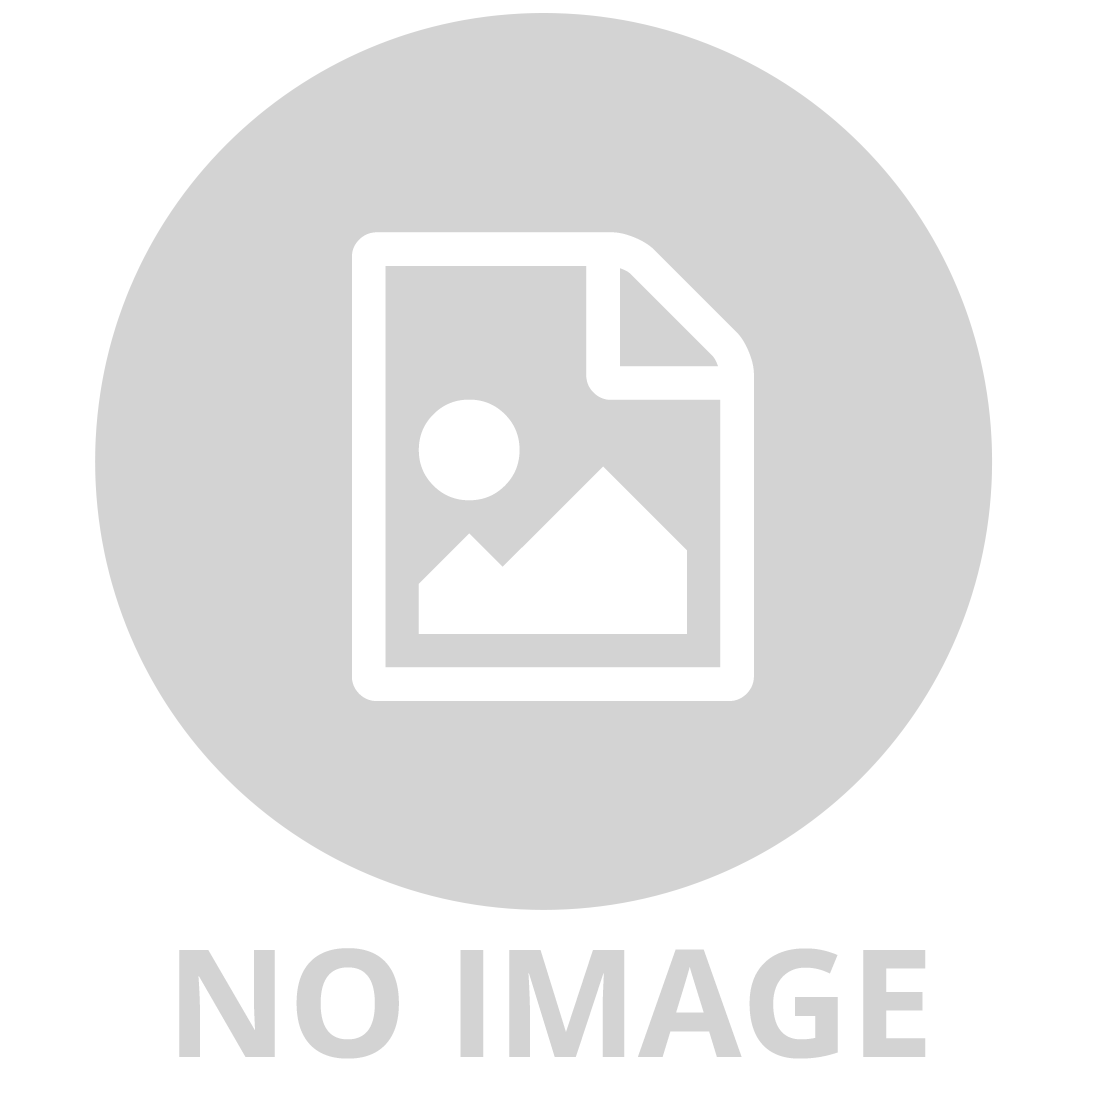 Lanscoop 13w 3000K WHT LED Adj Downlight